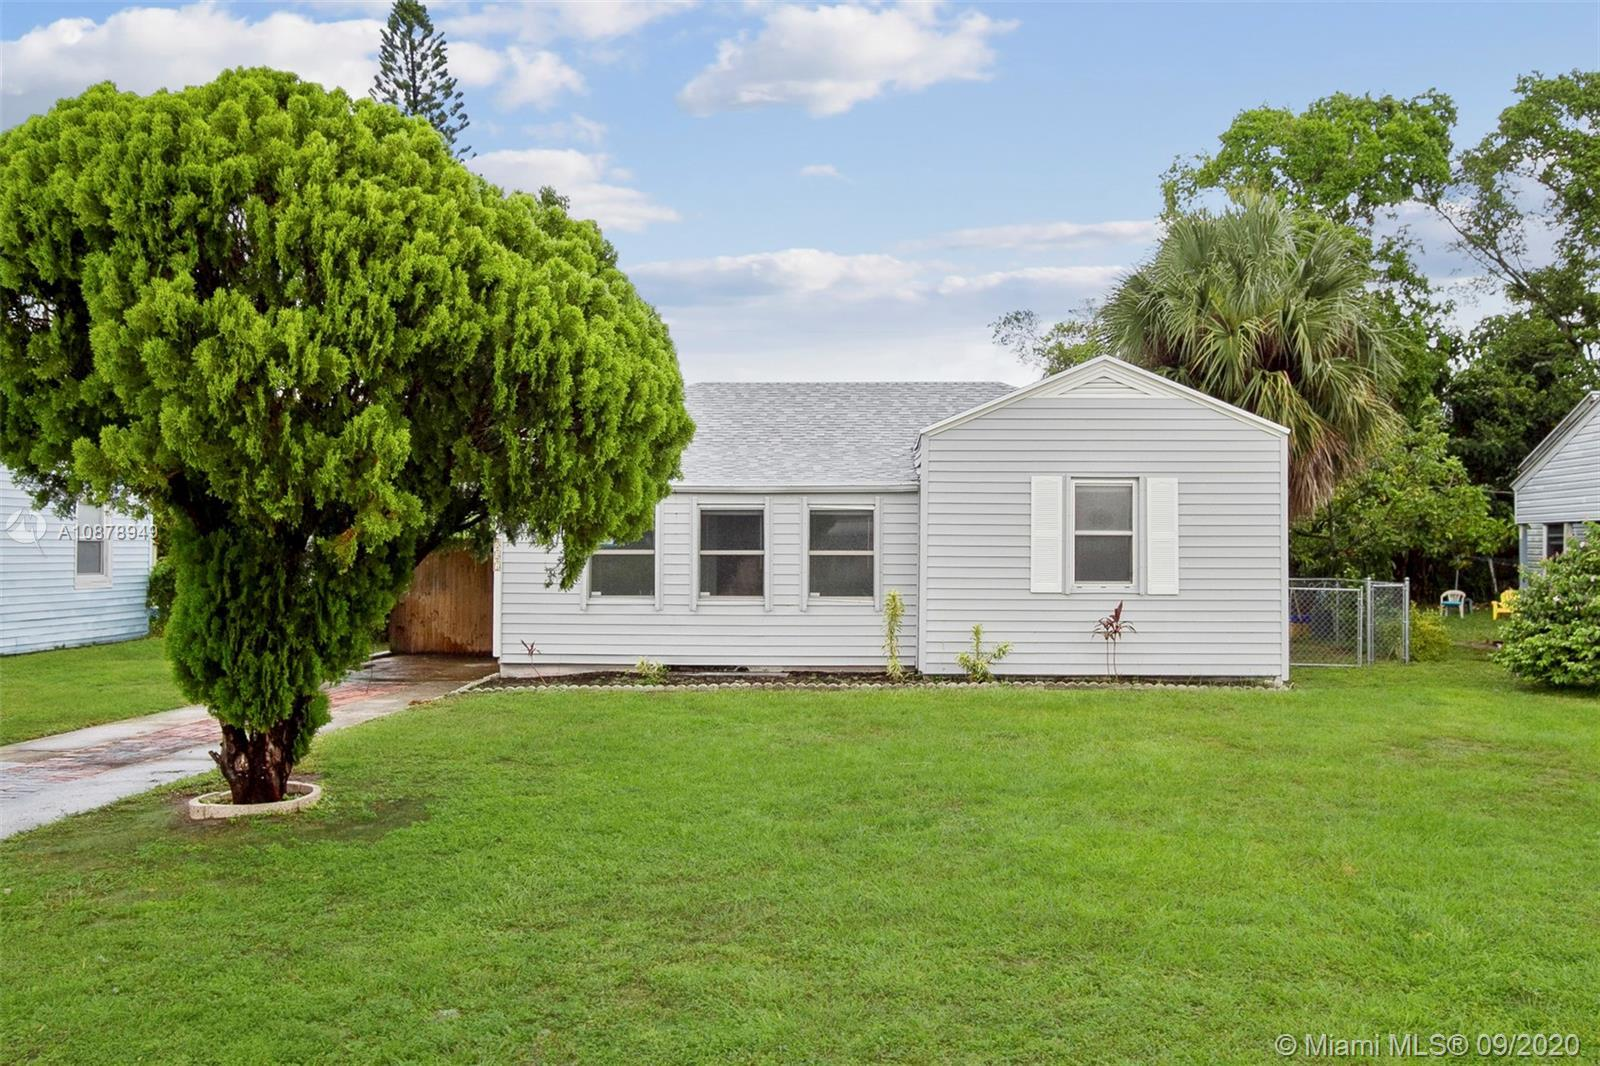 This home is a 3 bedroom, 1 bathroom with carport parking. Pecan Real Estate does not advertise on C